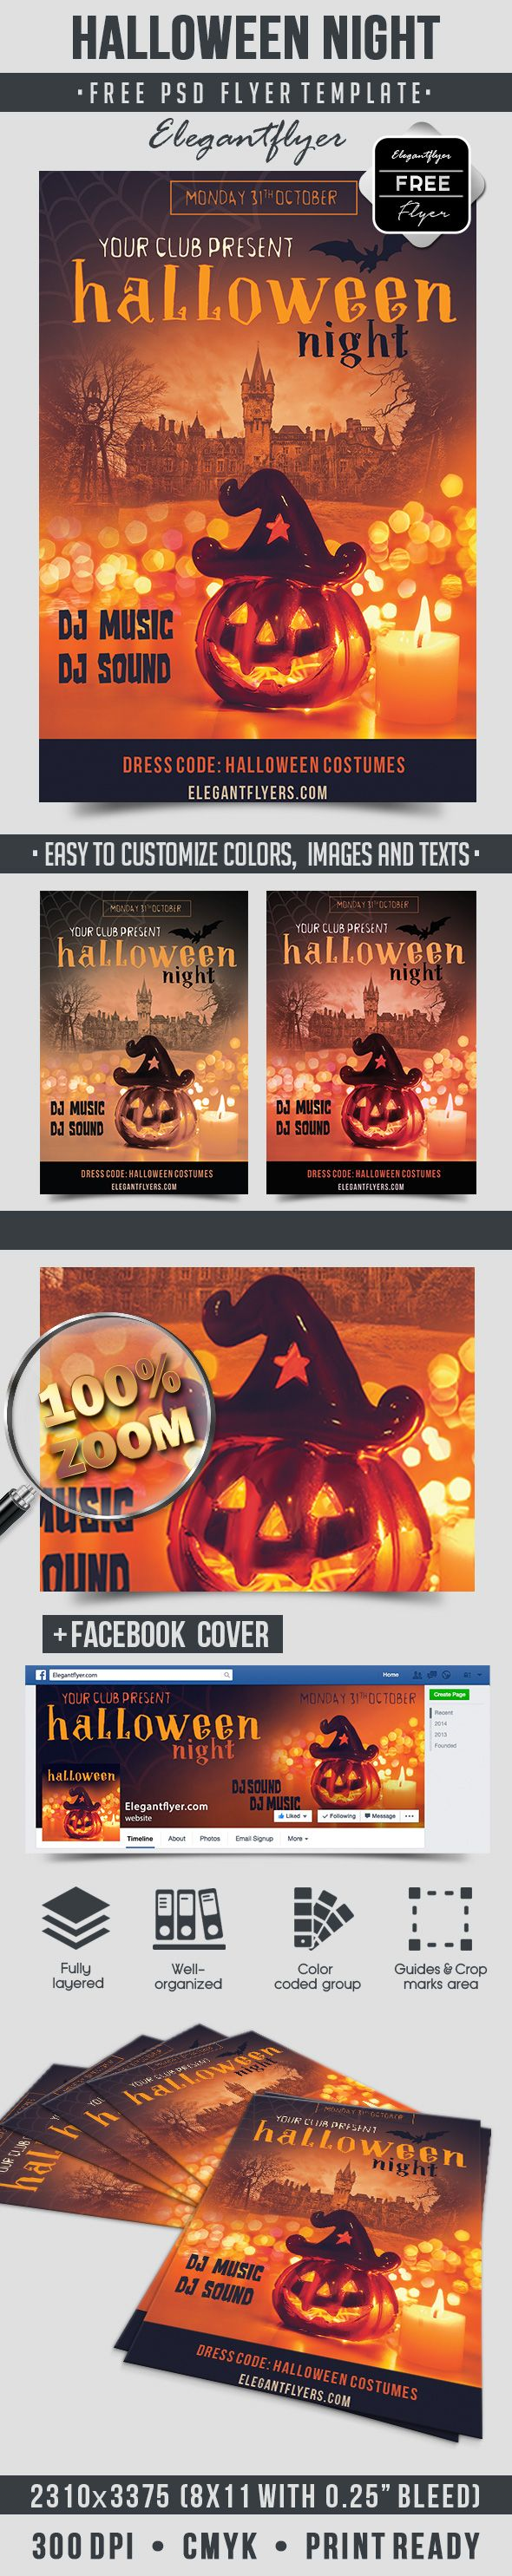 Halloween Night – Free Flyer PSD Template